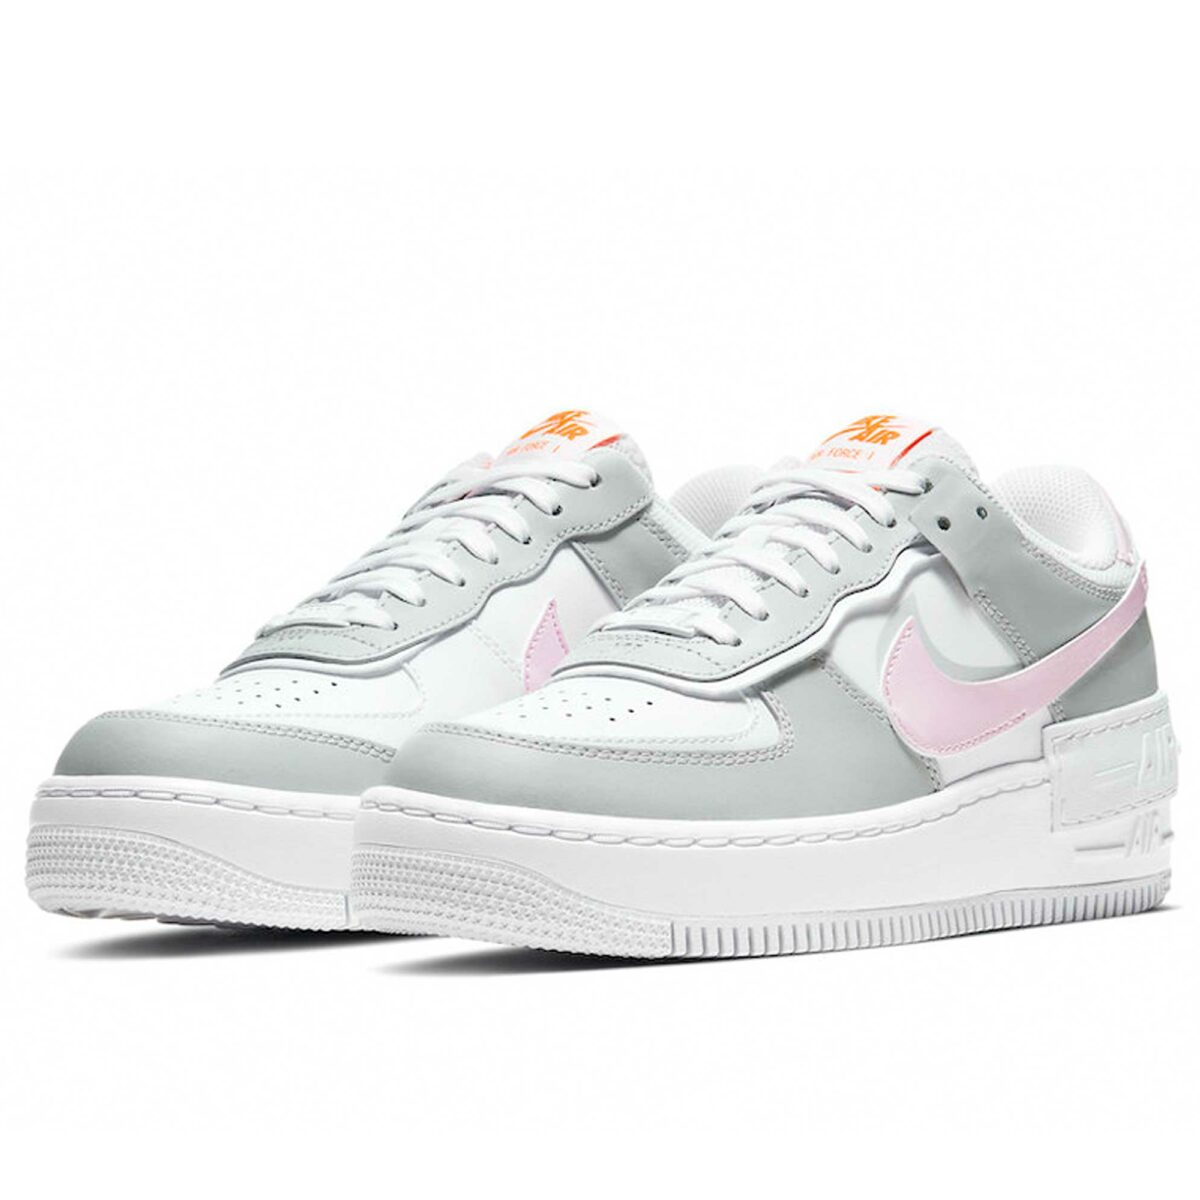 nike air force 1 shadow pink foam CZ0370_100 купить